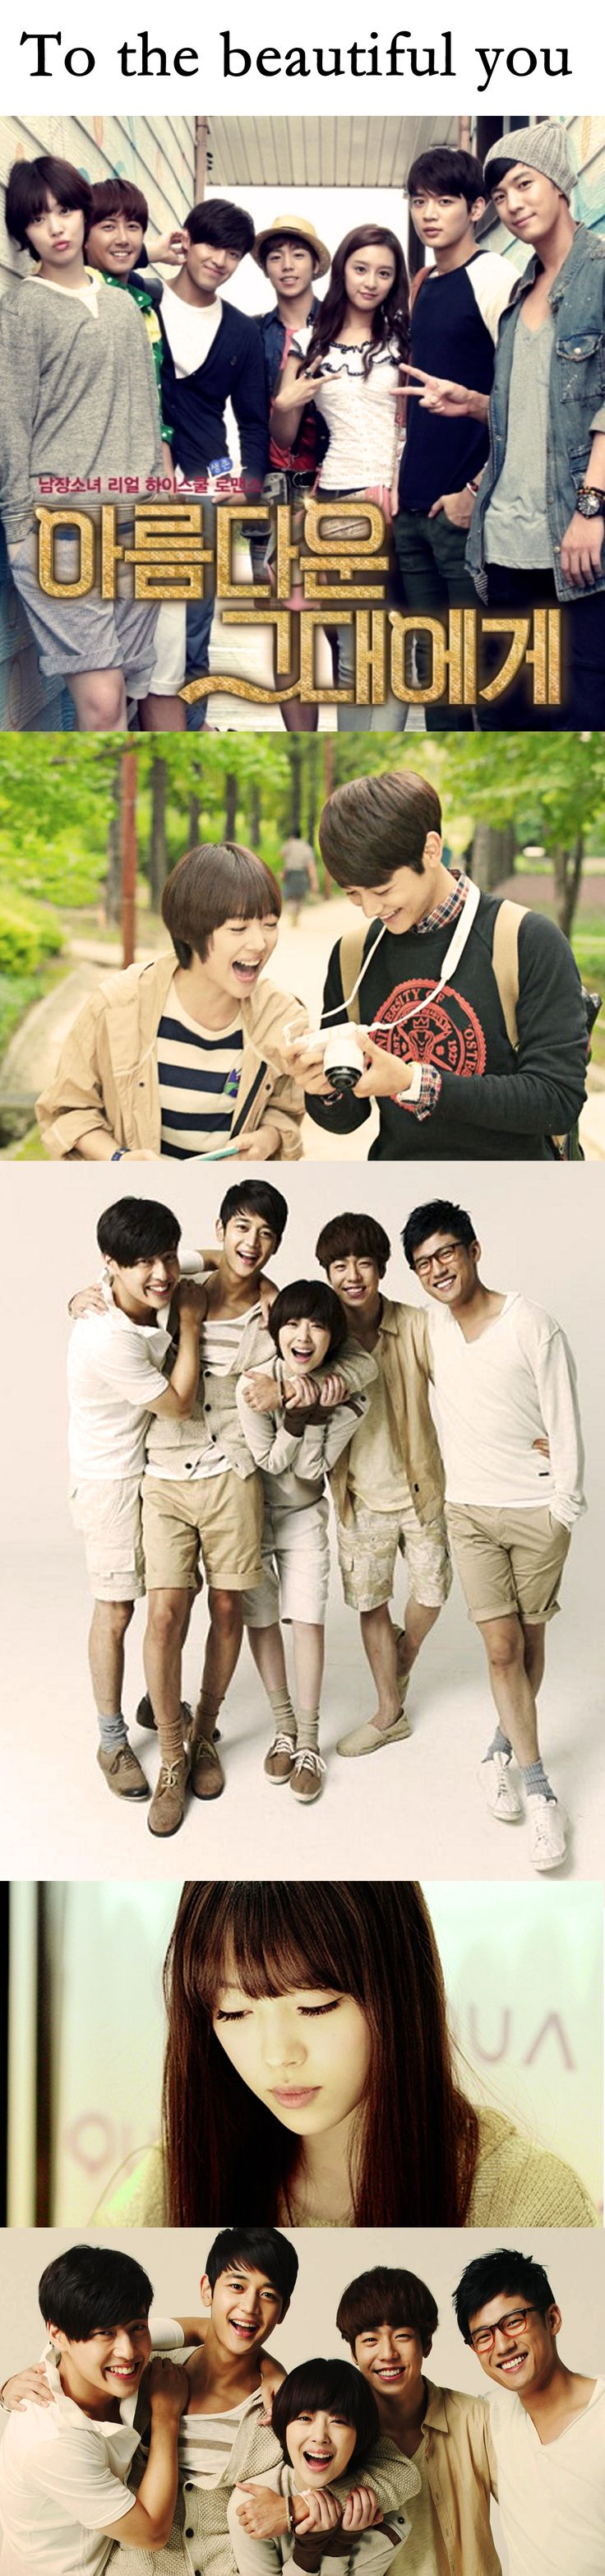 To The Beautiful You (kdrama 2012) - 16 episodes - Choi Minho / Choi Sulli / Lee Hyun-woo